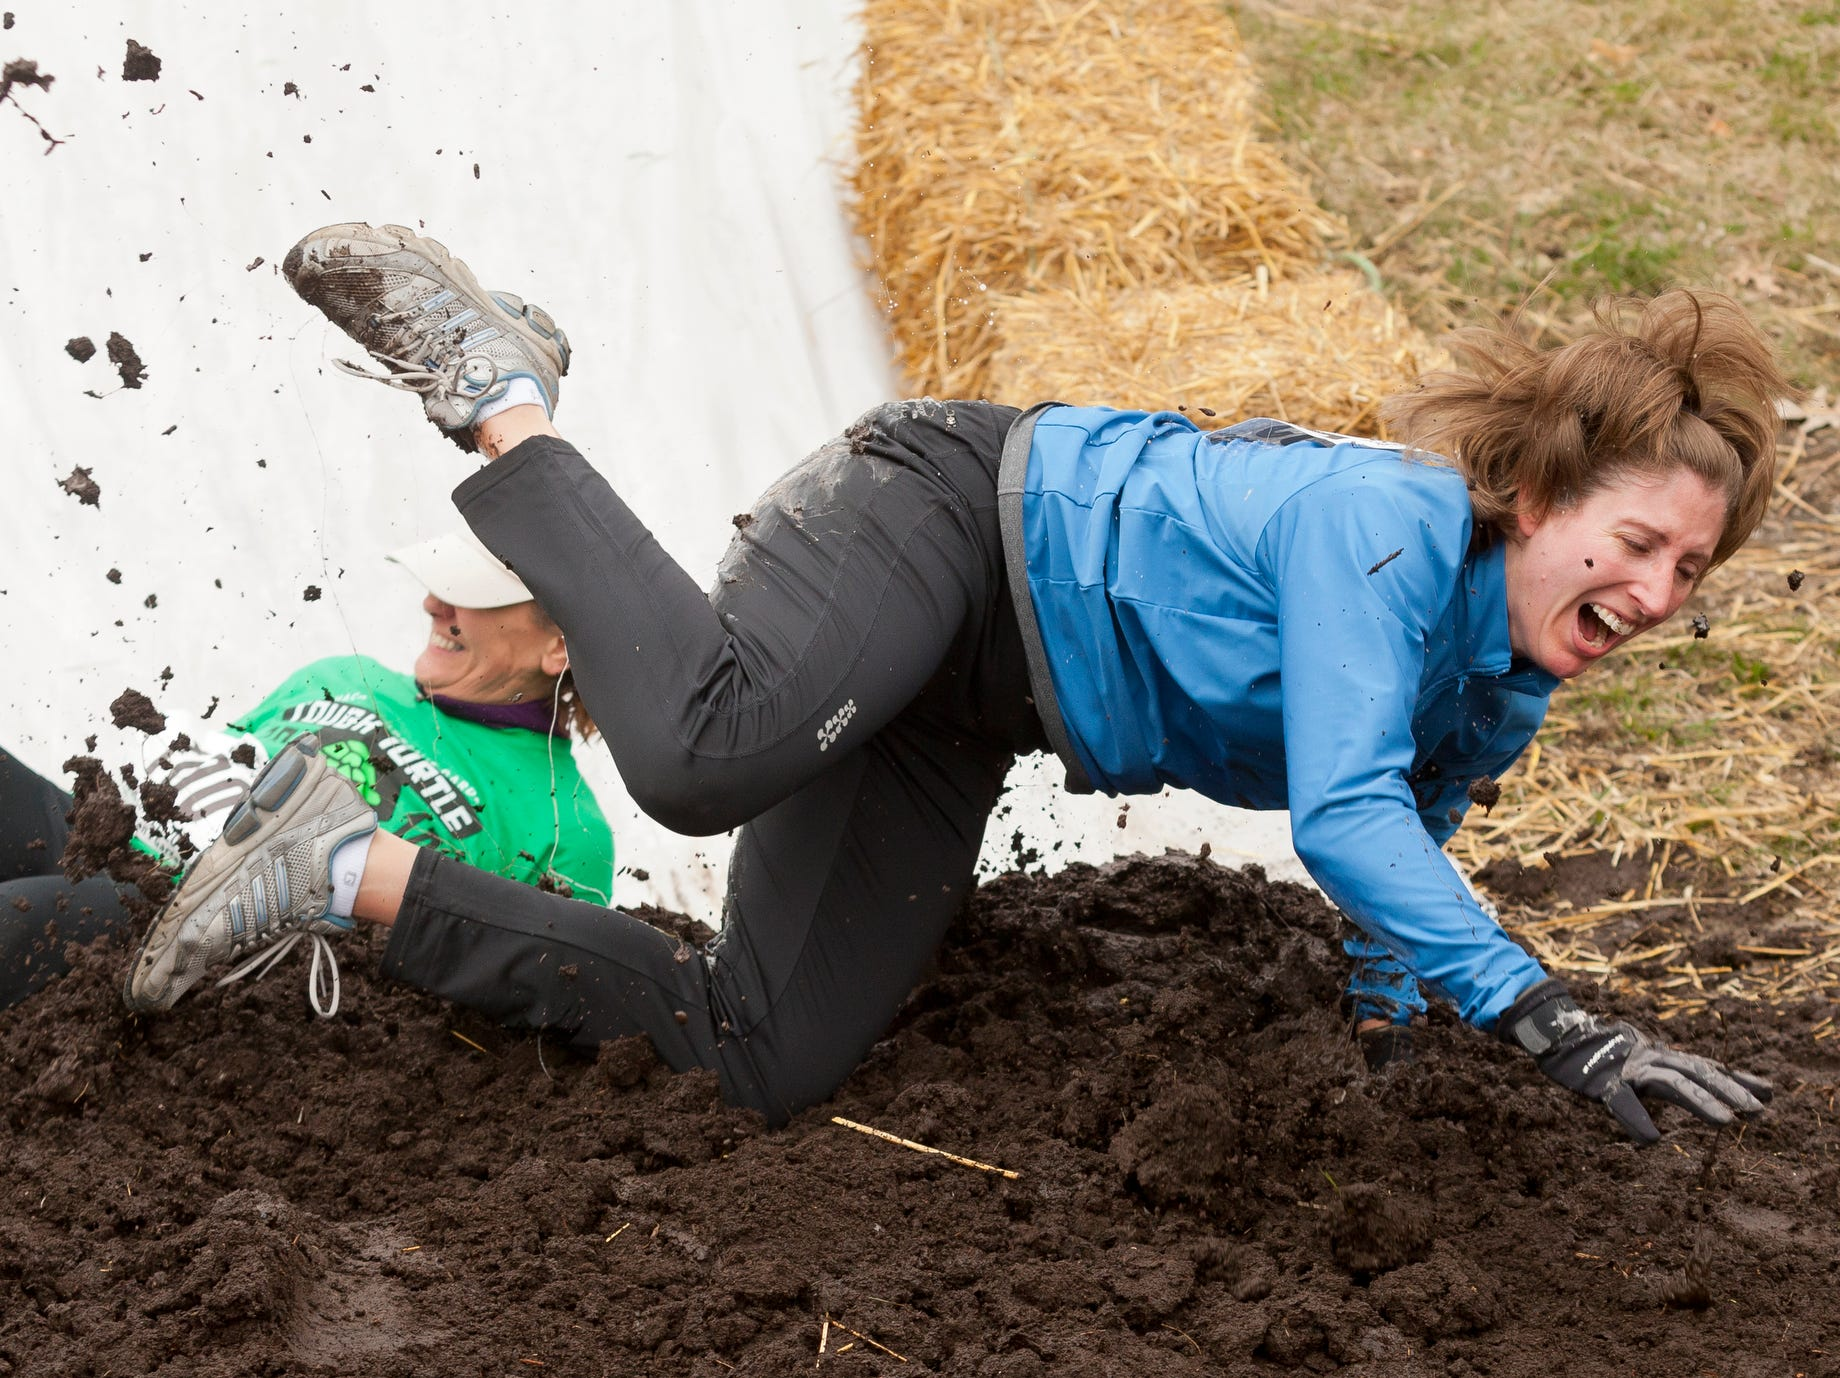 2014: Jennifer Gray of Ithaca hits the compost at the bottom of the plastic slide Saturday morning during the annual Tough Turtle event held to benefit the Children's Garden.